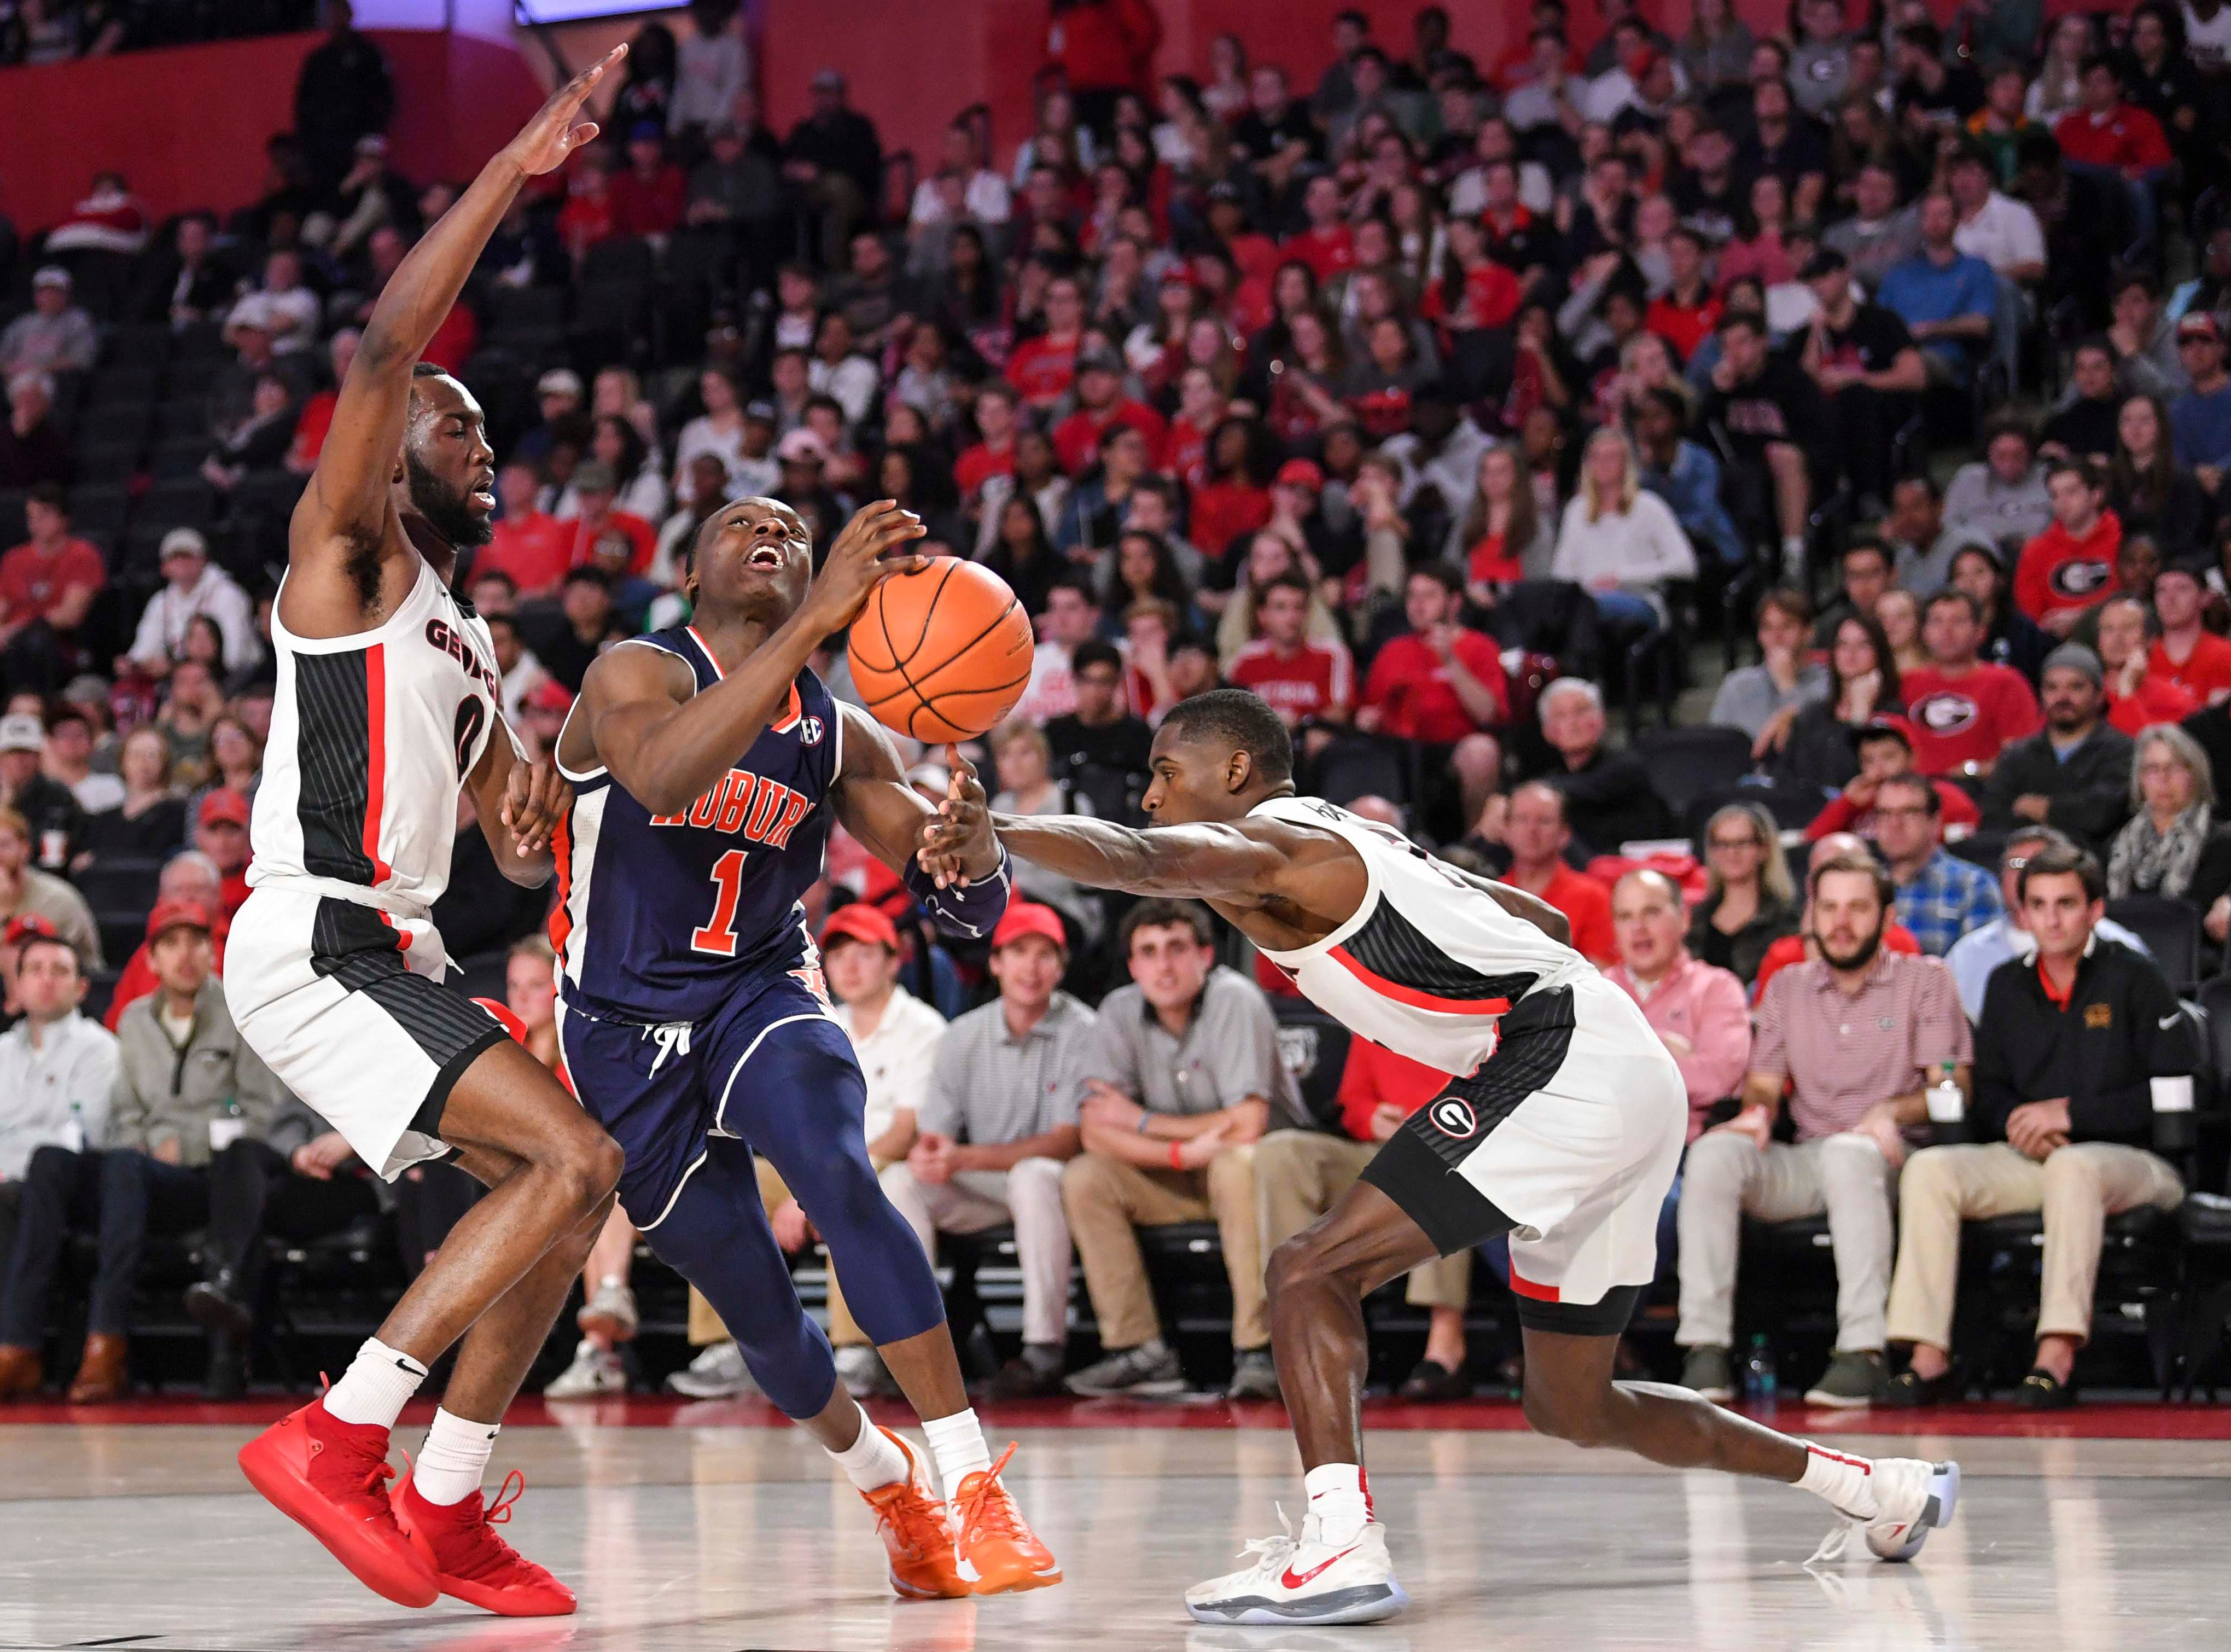 Feb 27, 2019; Athens, GA, USA; Auburn Tigers guard guard Jared Harper (1) looses the ball against Georgia Bulldogs guards William Jackson II (0) and Jordan Harris (2) during the first half at Stegeman Coliseum. Mandatory Credit: Dale Zanine-USA TODAY Sports